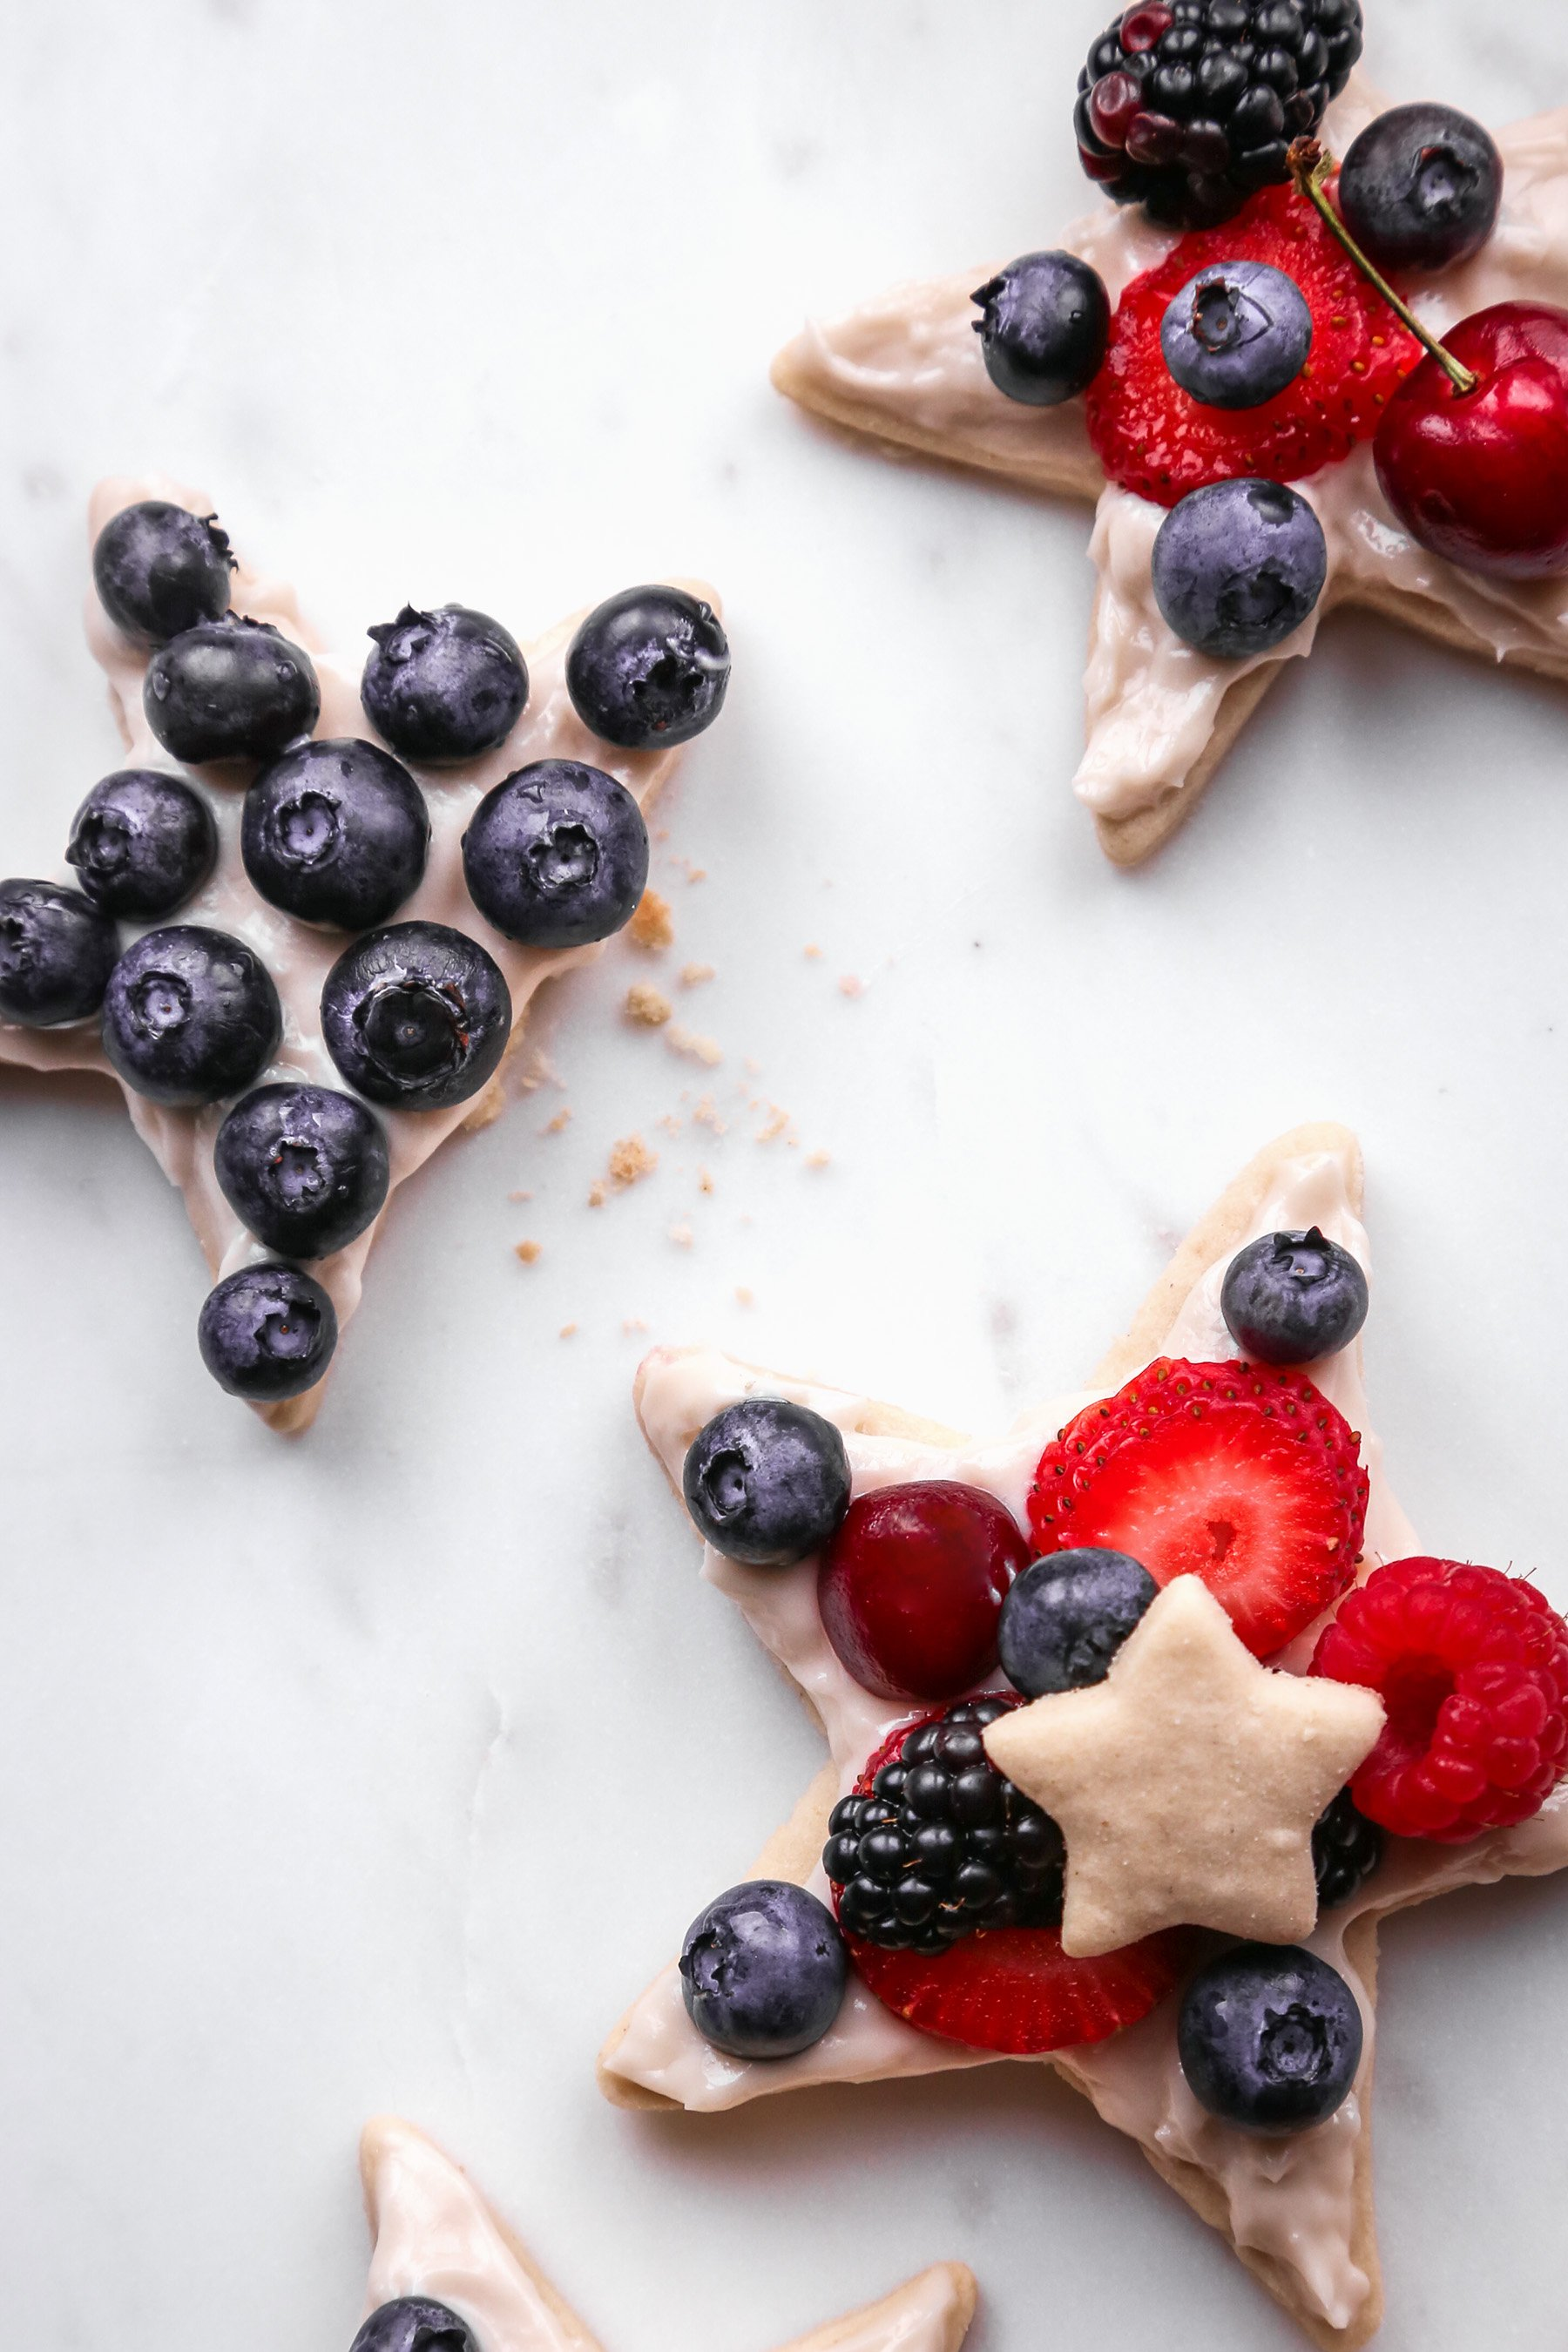 Patriotic DIY Fruit Pizza Platter | Vegan and refined sugar free with gluten-free option